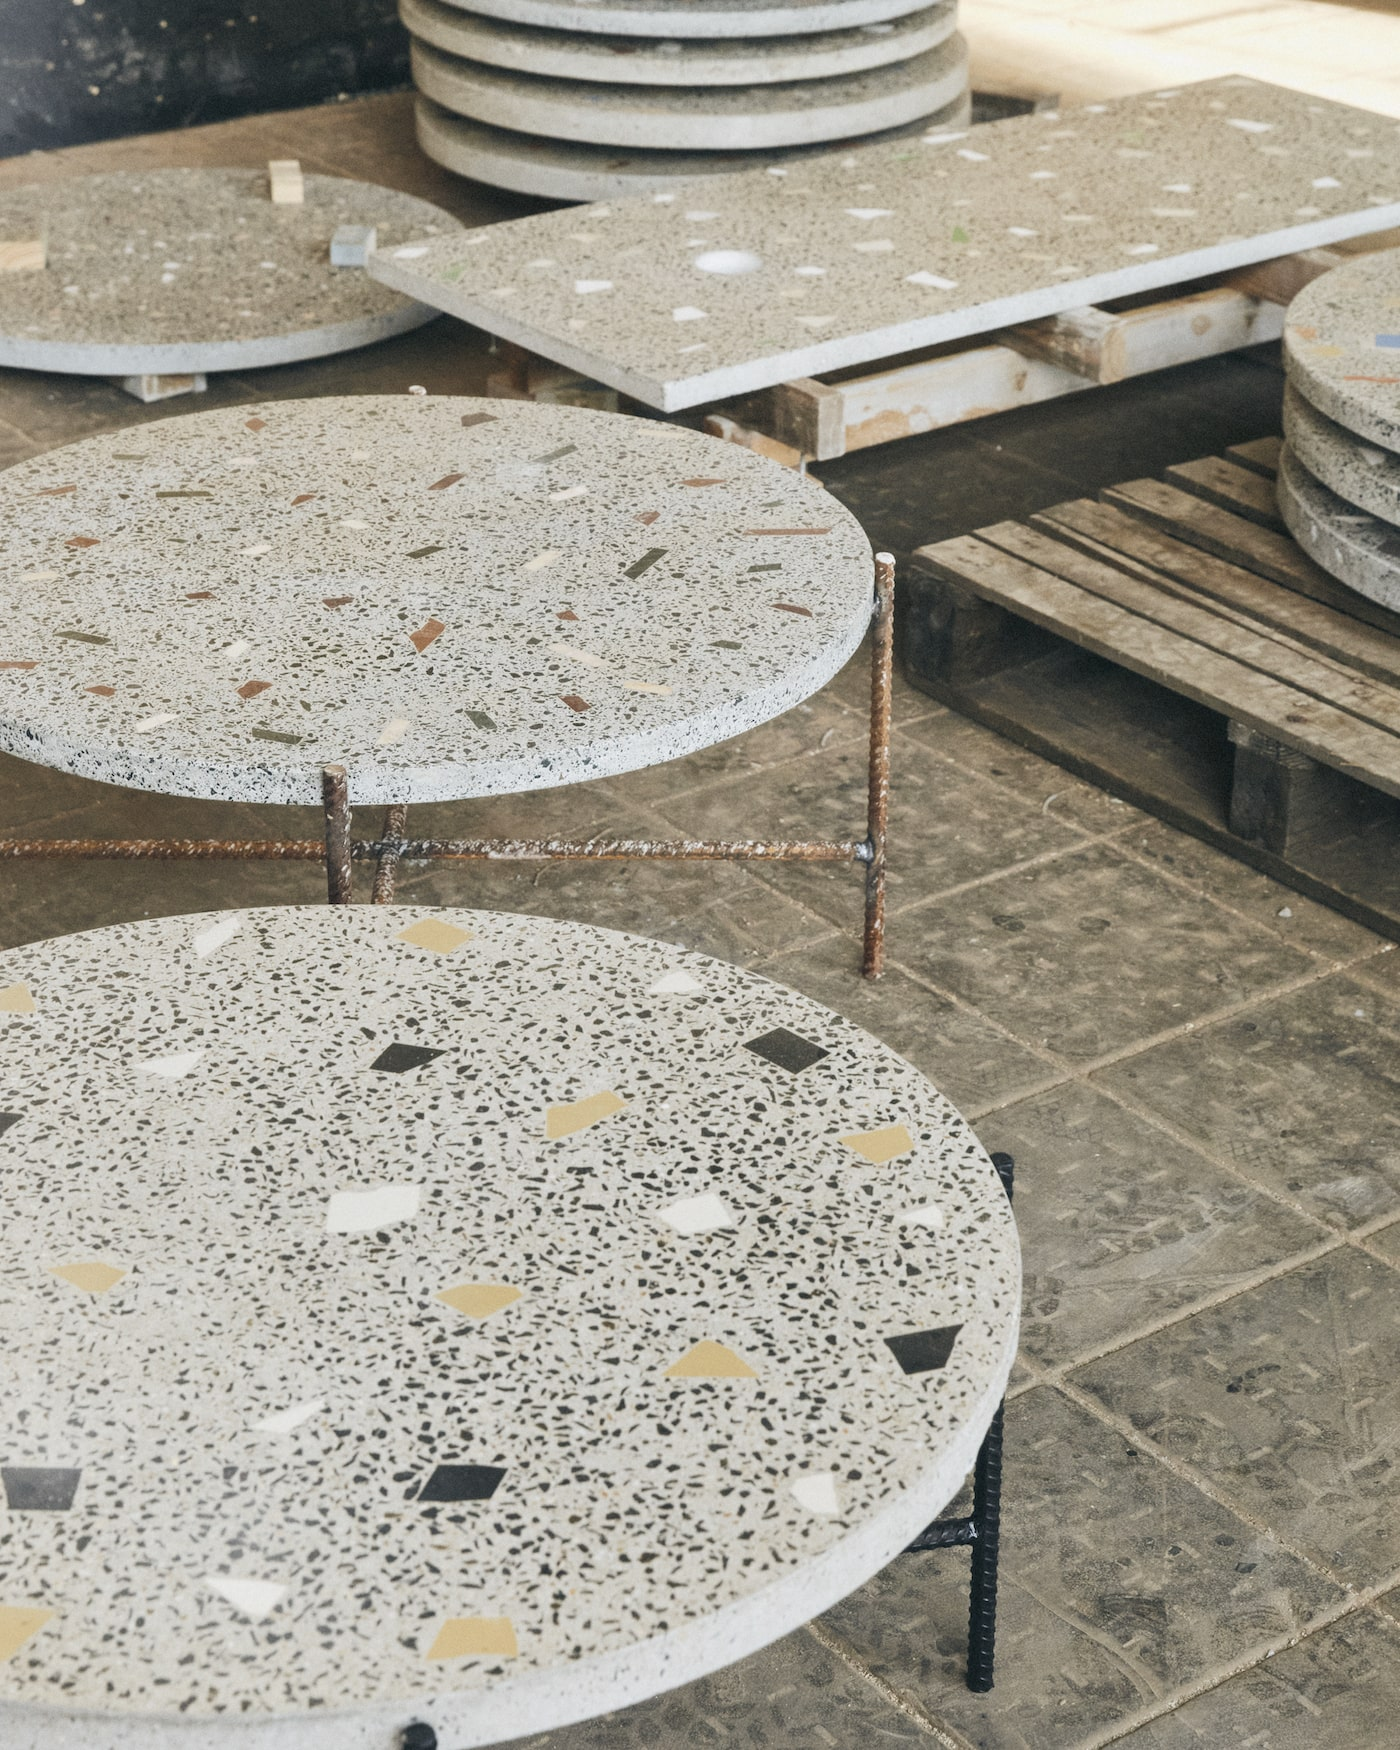 Workshop with concrete terrazzo table tops